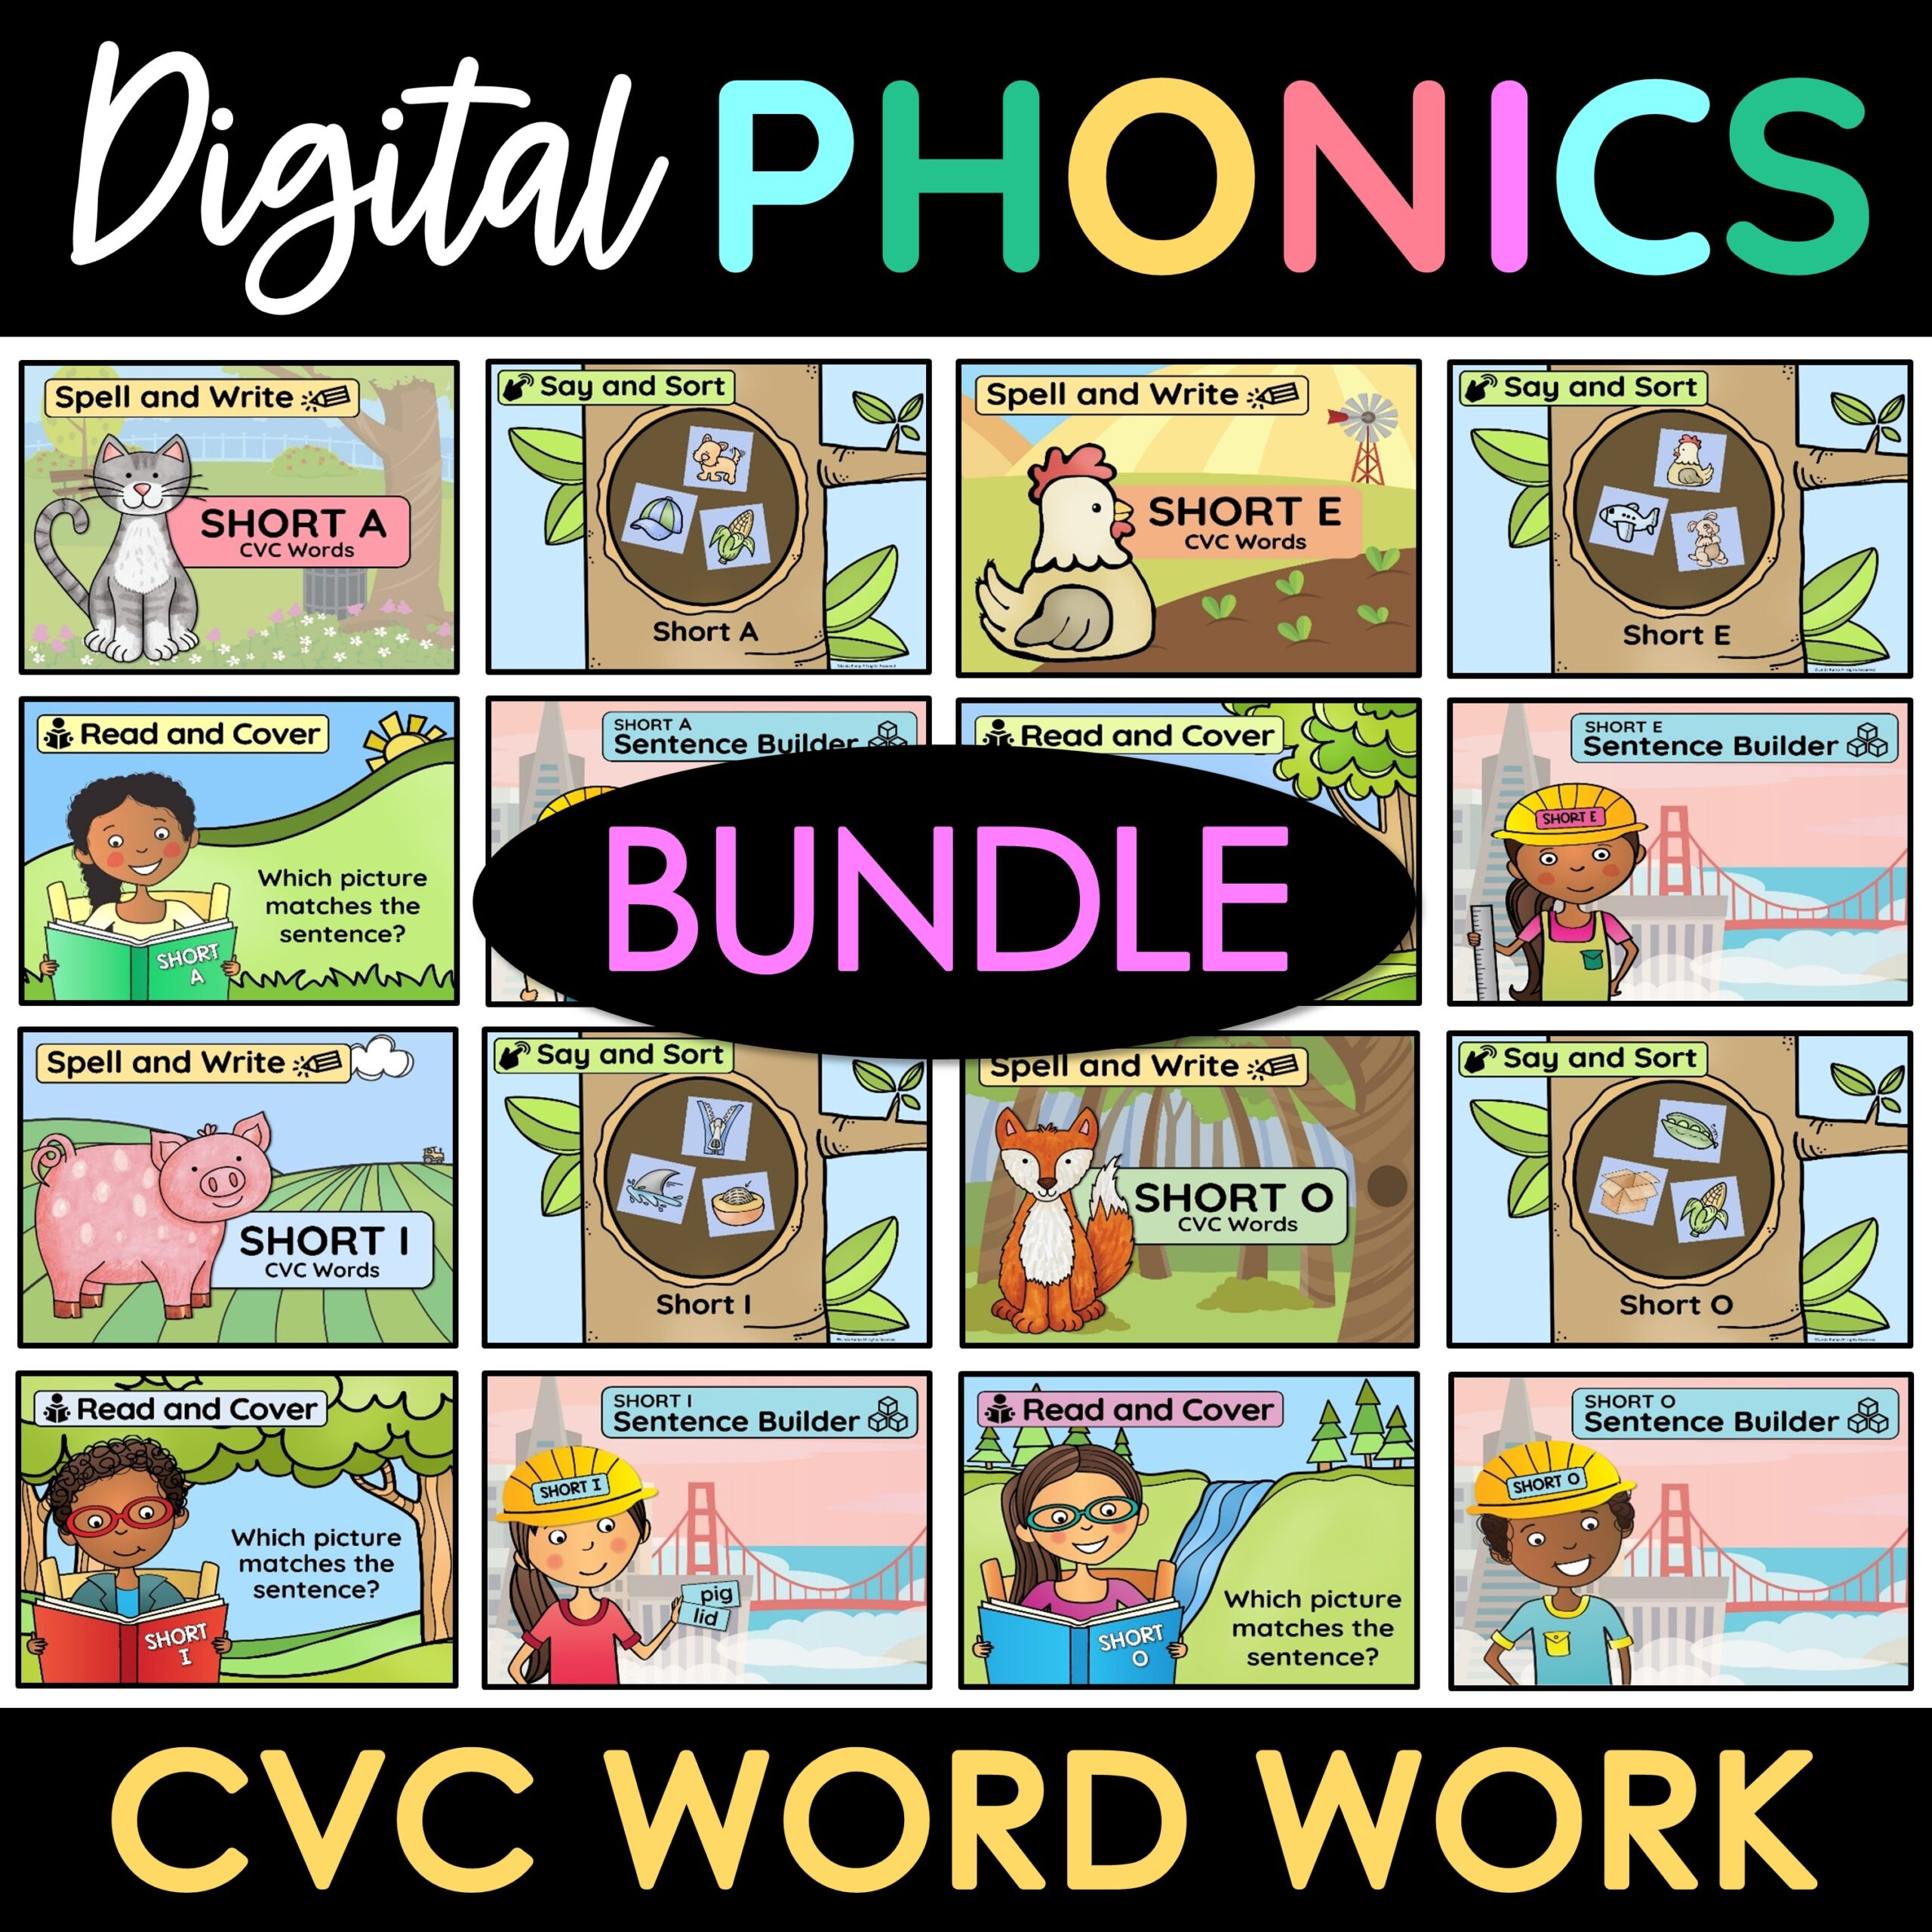 digital phonics games word work CVC cover